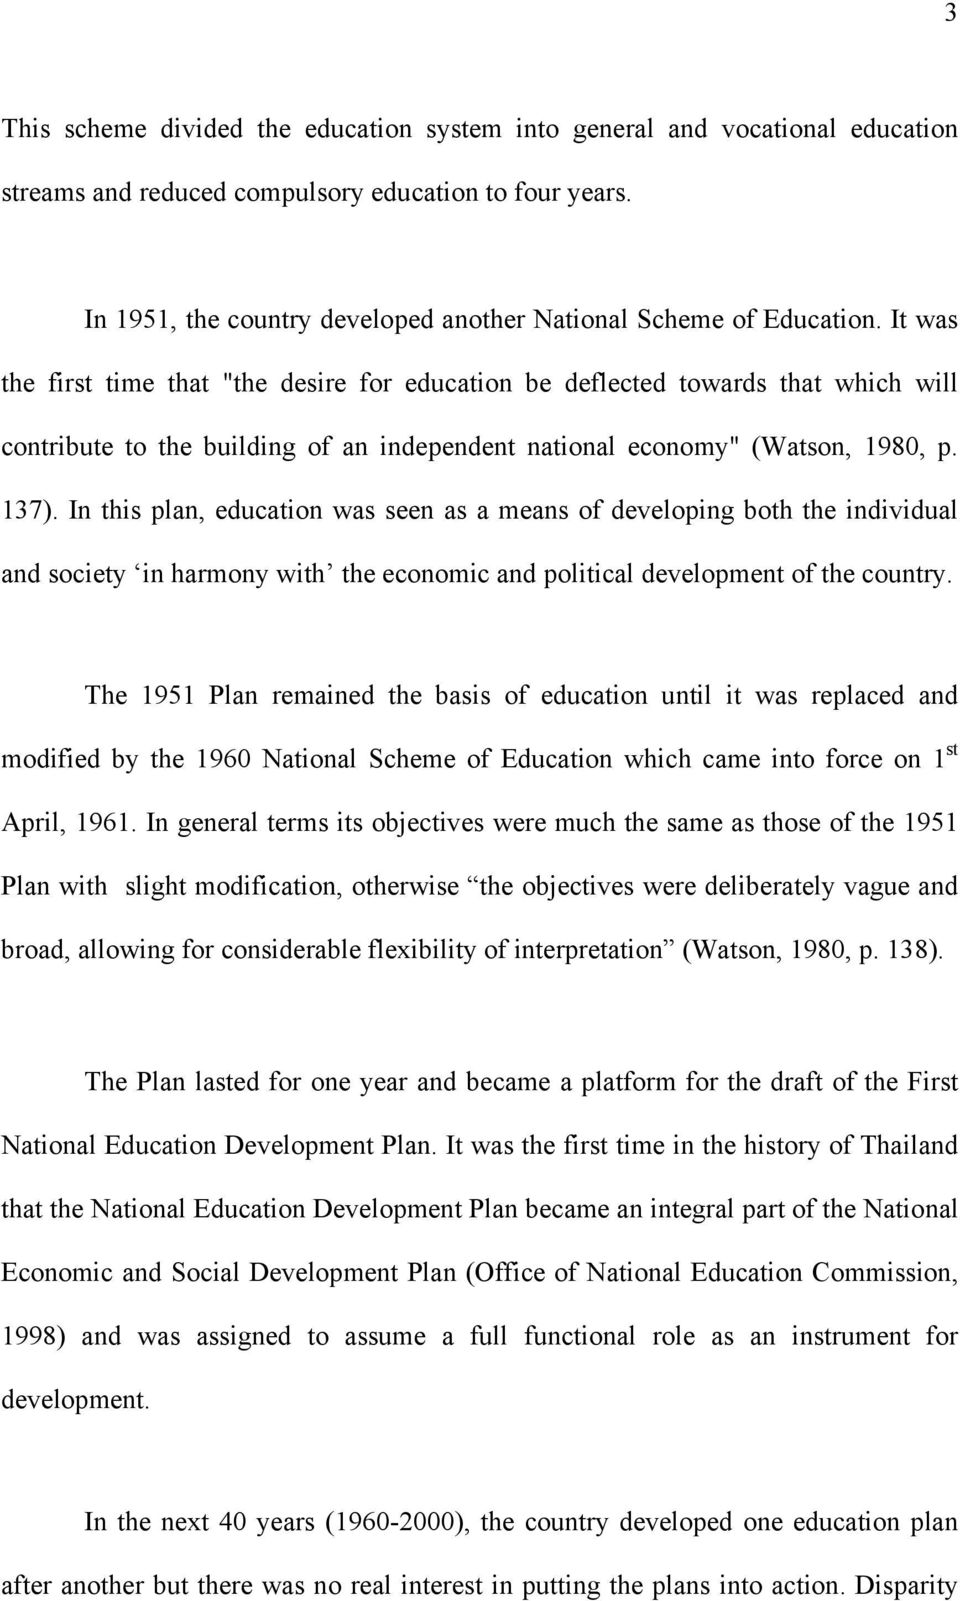 "It was the first time that ""the desire for education be deflected towards that which will contribute to the building of an independent national economy"" (Watson, 1980, p. 137)."